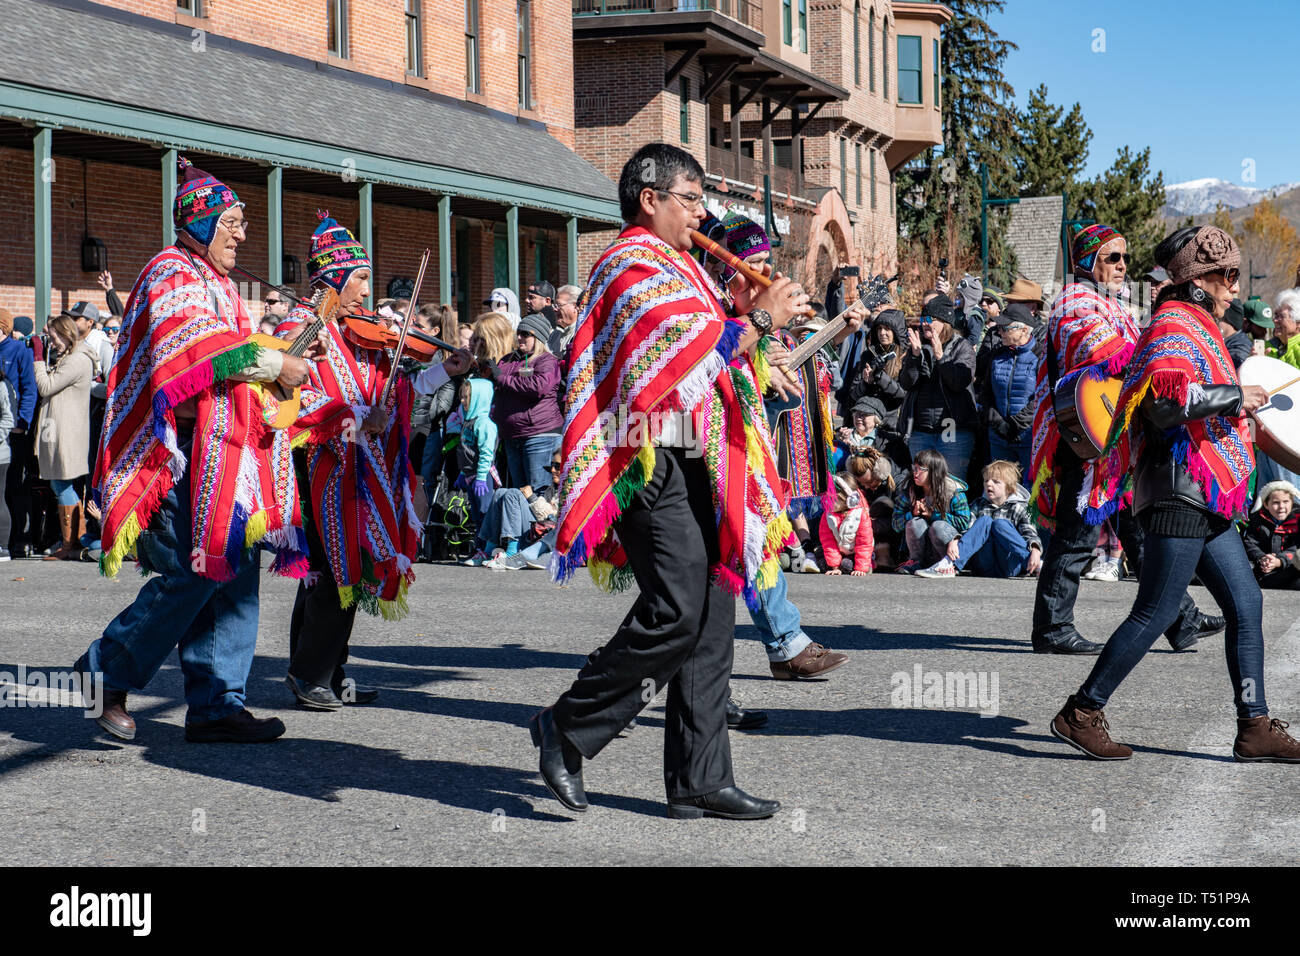 Main parade of Trailing of the Sheep in downtown Ketchum, Idaho, USA - Stock Image